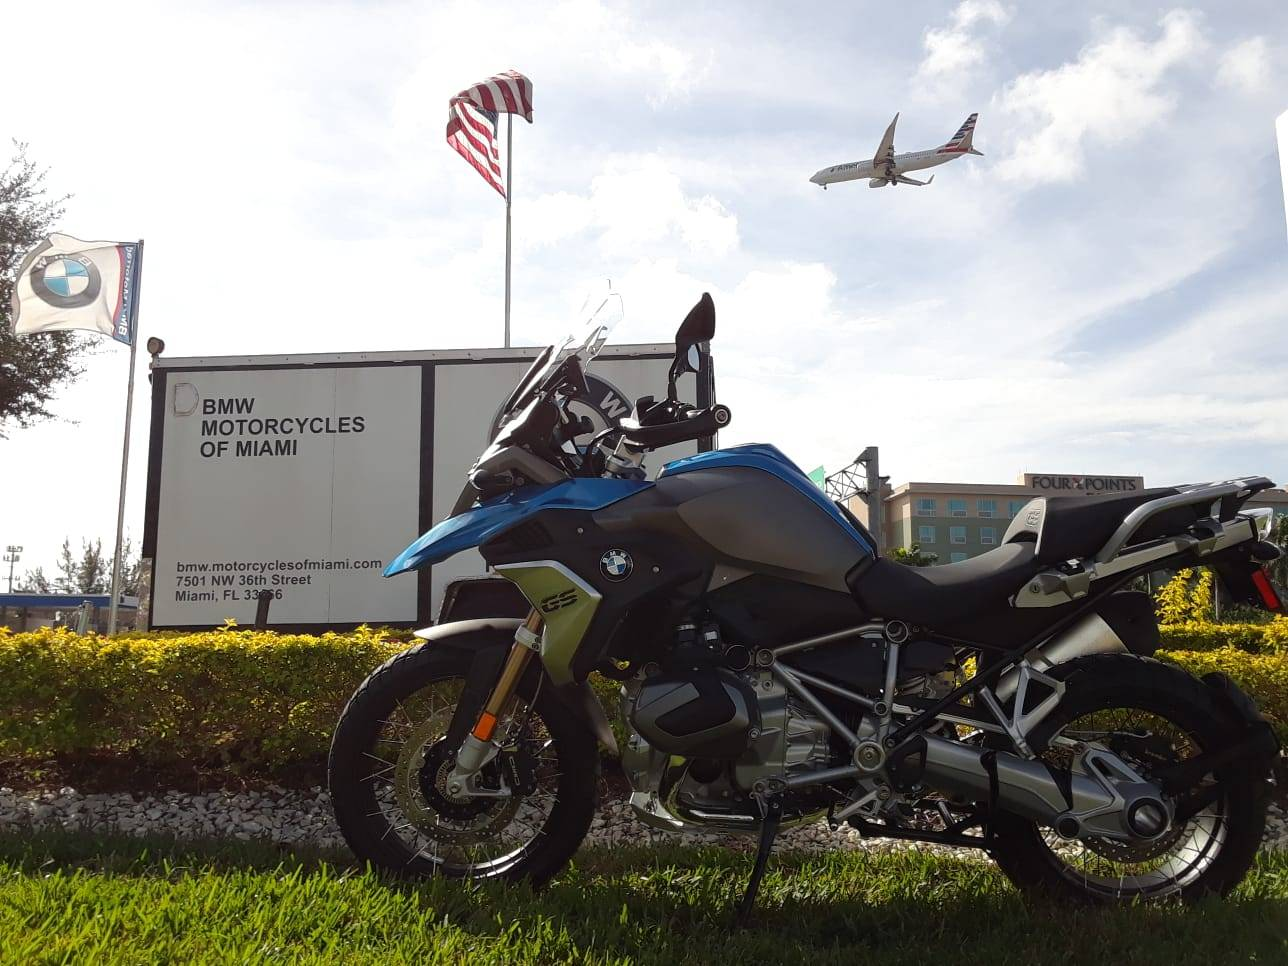 New 2019 BMW R 1250 GS for sale, New BMW R 1250GS, BMW R1250GS for sale, 1250GS, R1250GS, BMW Motorcycles of Miami, Motorcycles of Miami. Motorcycles Miami - Photo 24